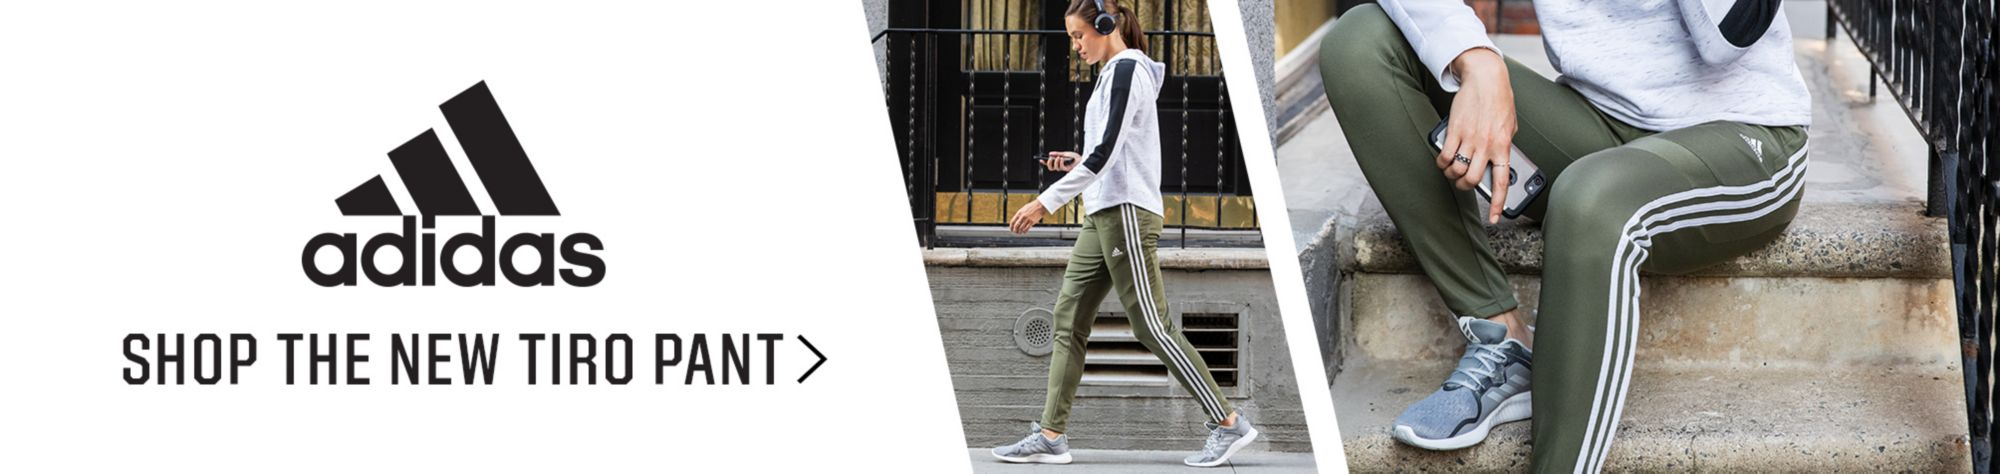 adidas - Shop the new Tiro pant